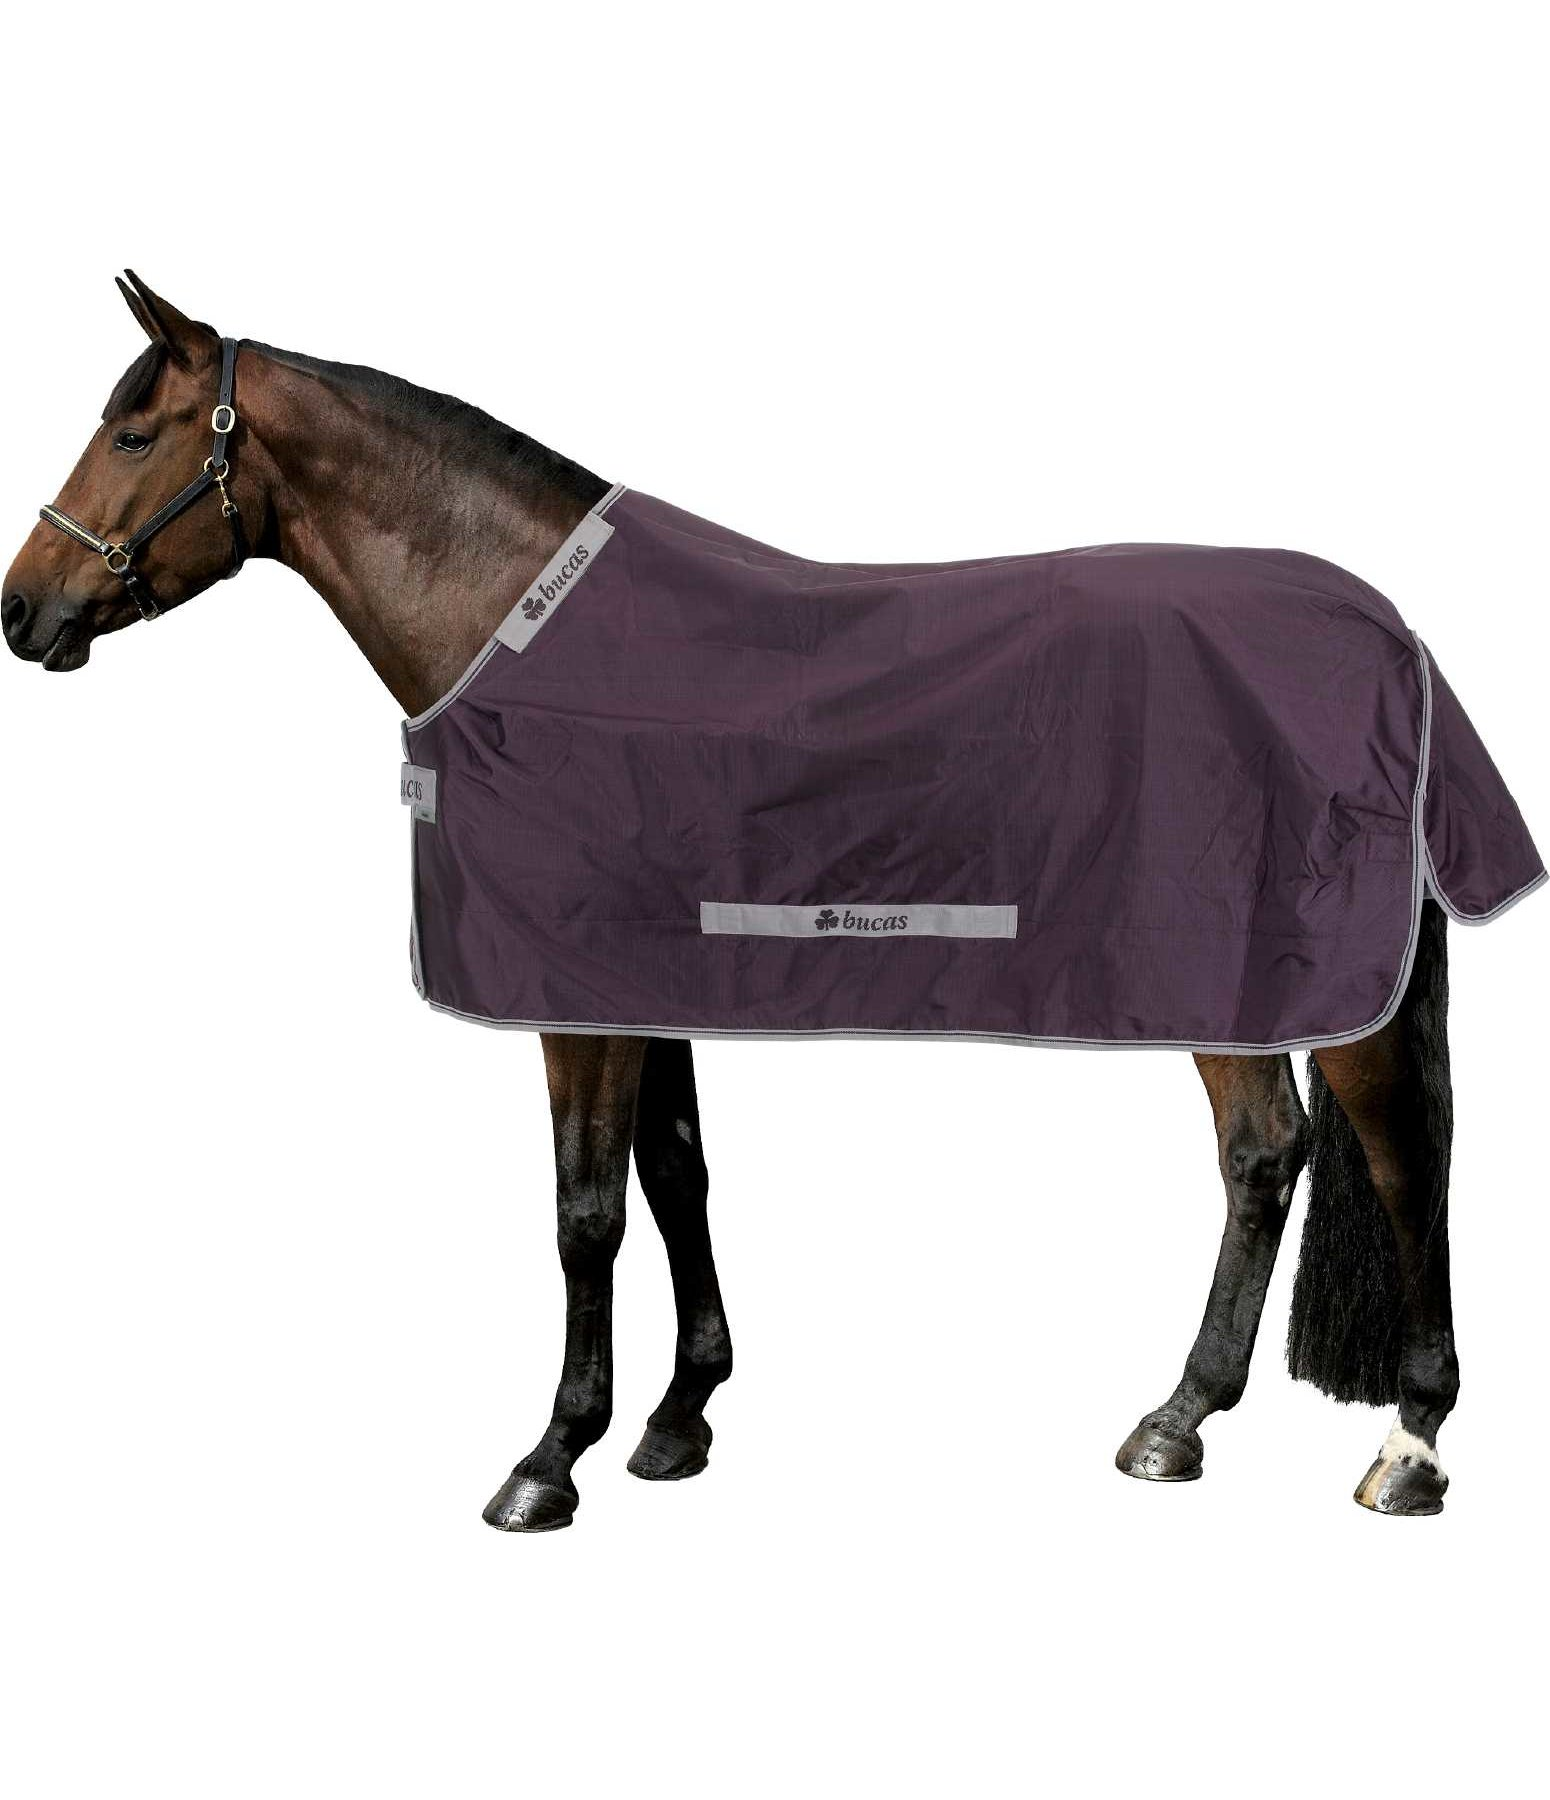 Turnout Rug Smartex Rain, 150g